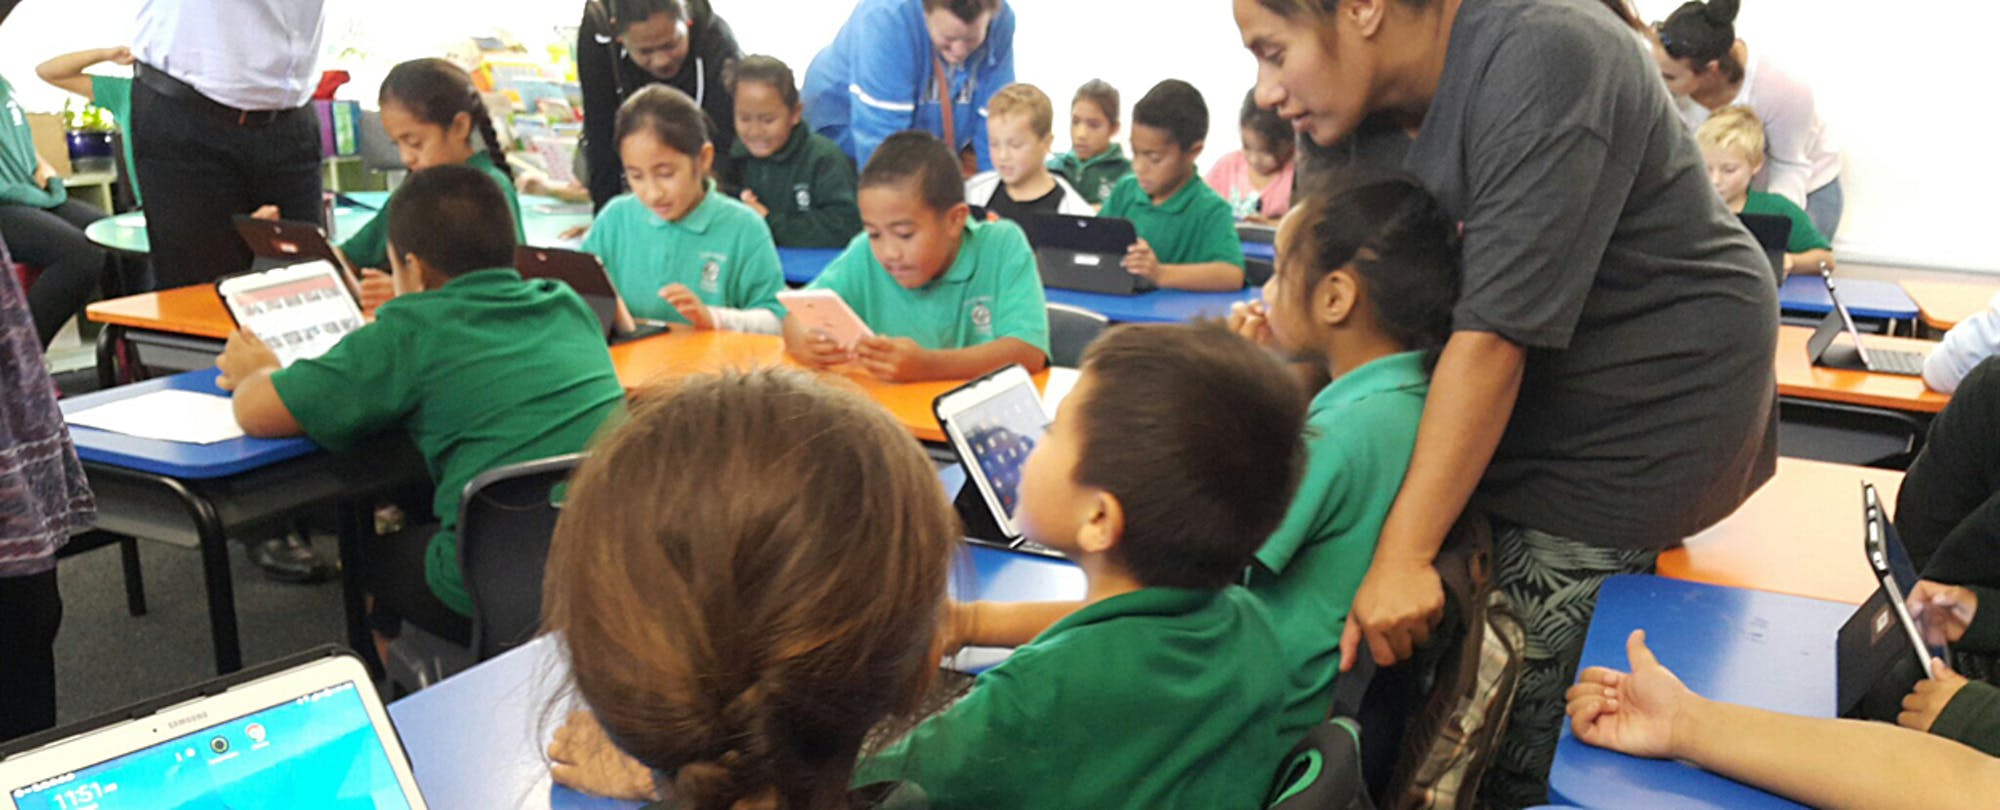 Rangatiratanga: How Tapping Into New Zealand's Indigenous Concepts Sparked New Educational Gains